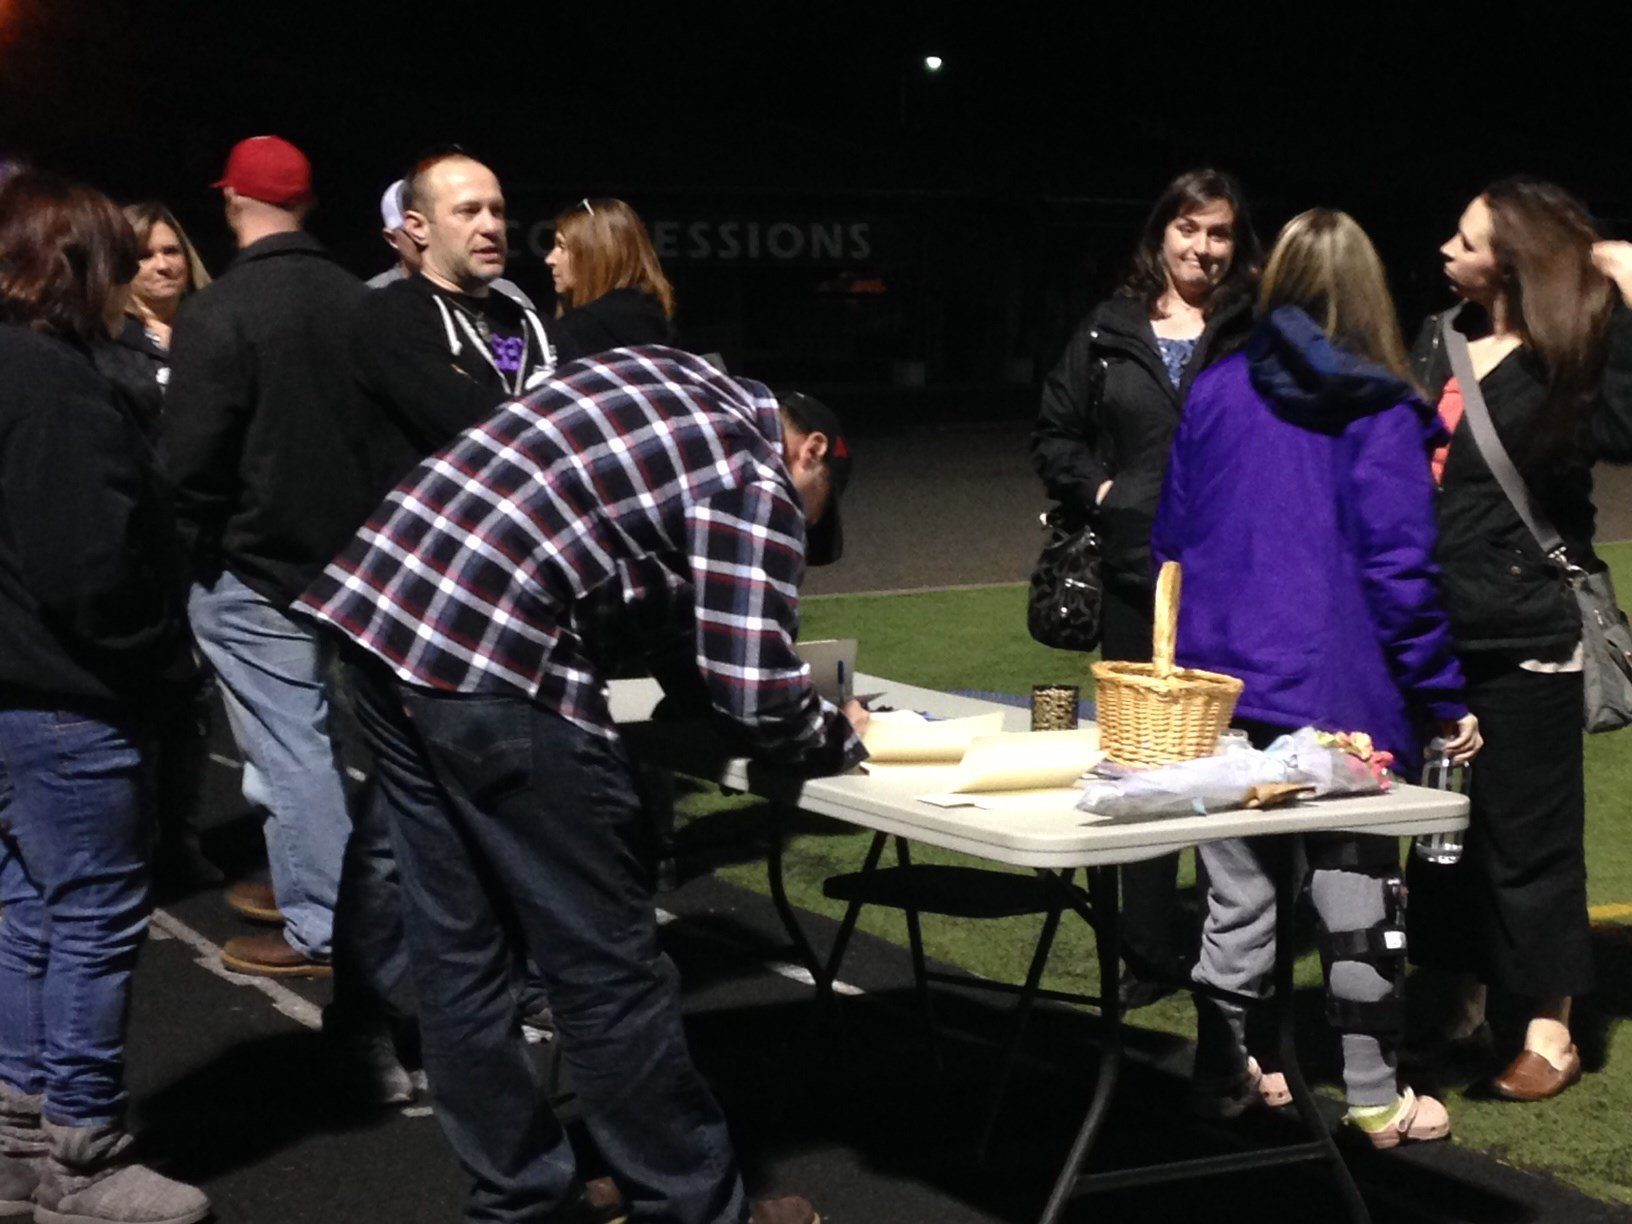 People signing notes at Monday's vigil at Sherwood High School.